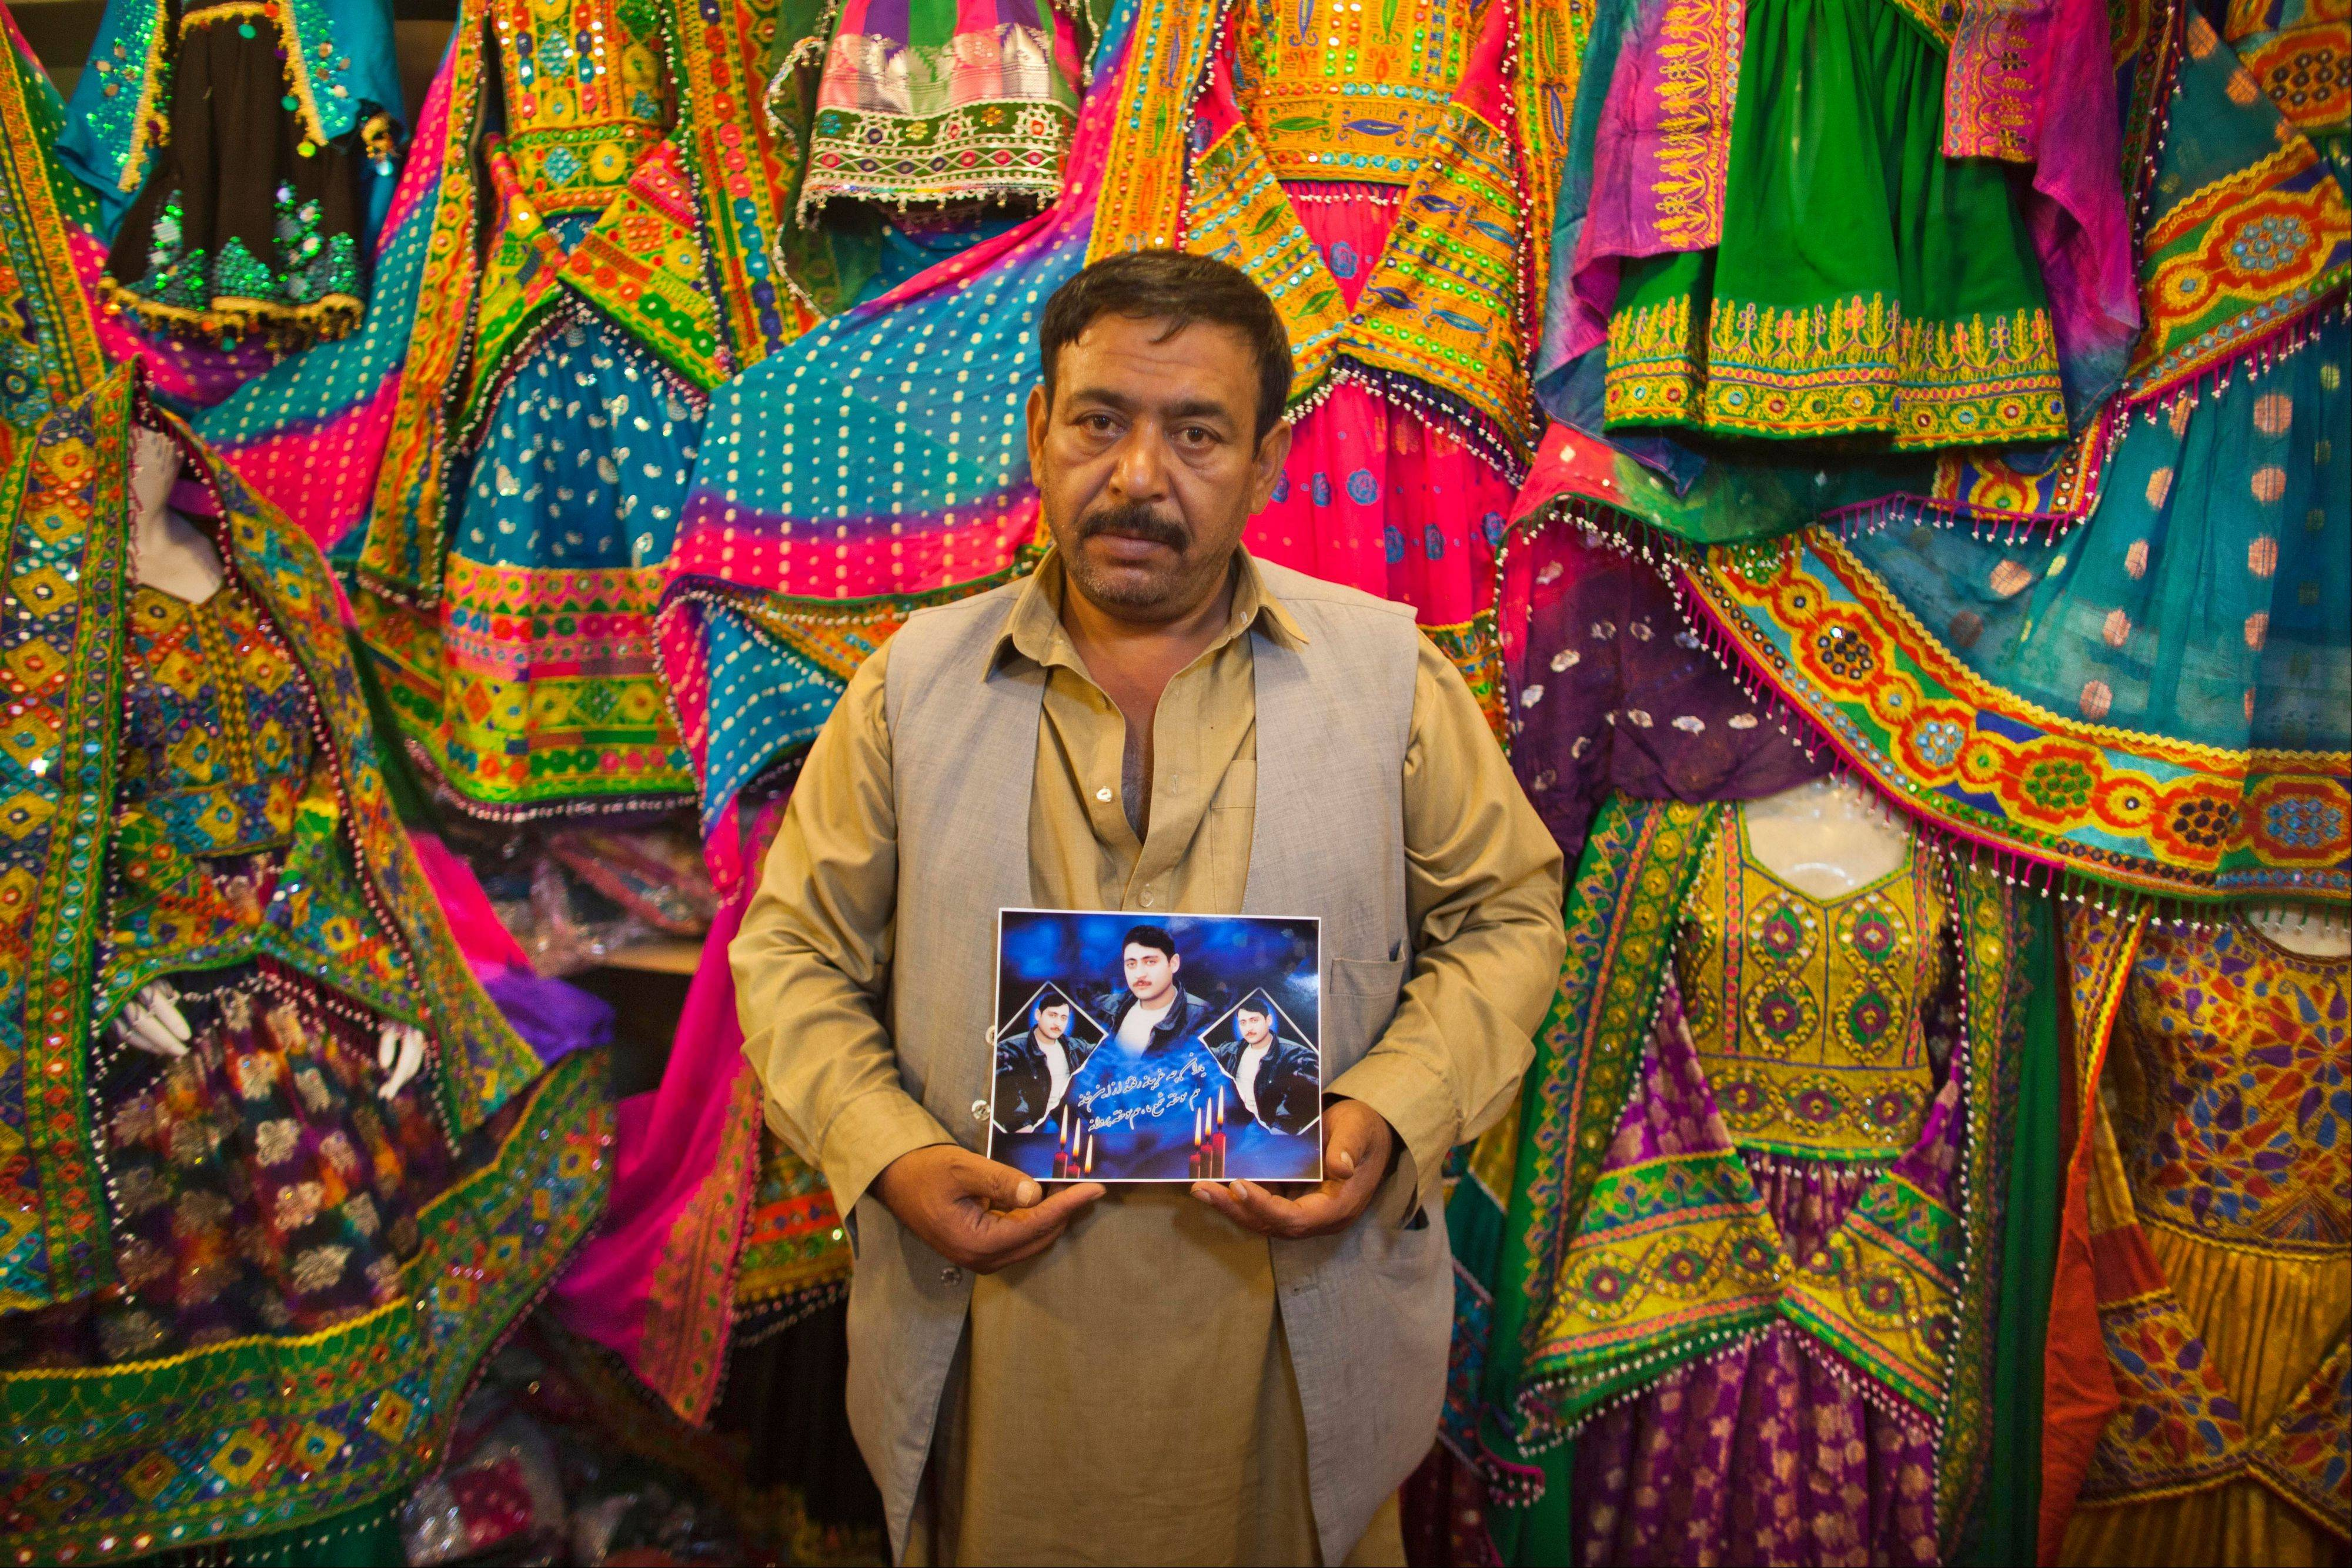 Noorullah Hamidi who owns a women's dress shop, poses with a photograph of his brother Hafizullha, who was killed near the shop while trying to flee street fighting during the civil war in Kabul, Afghanistan, Sunday, Oct. 7, 2012.